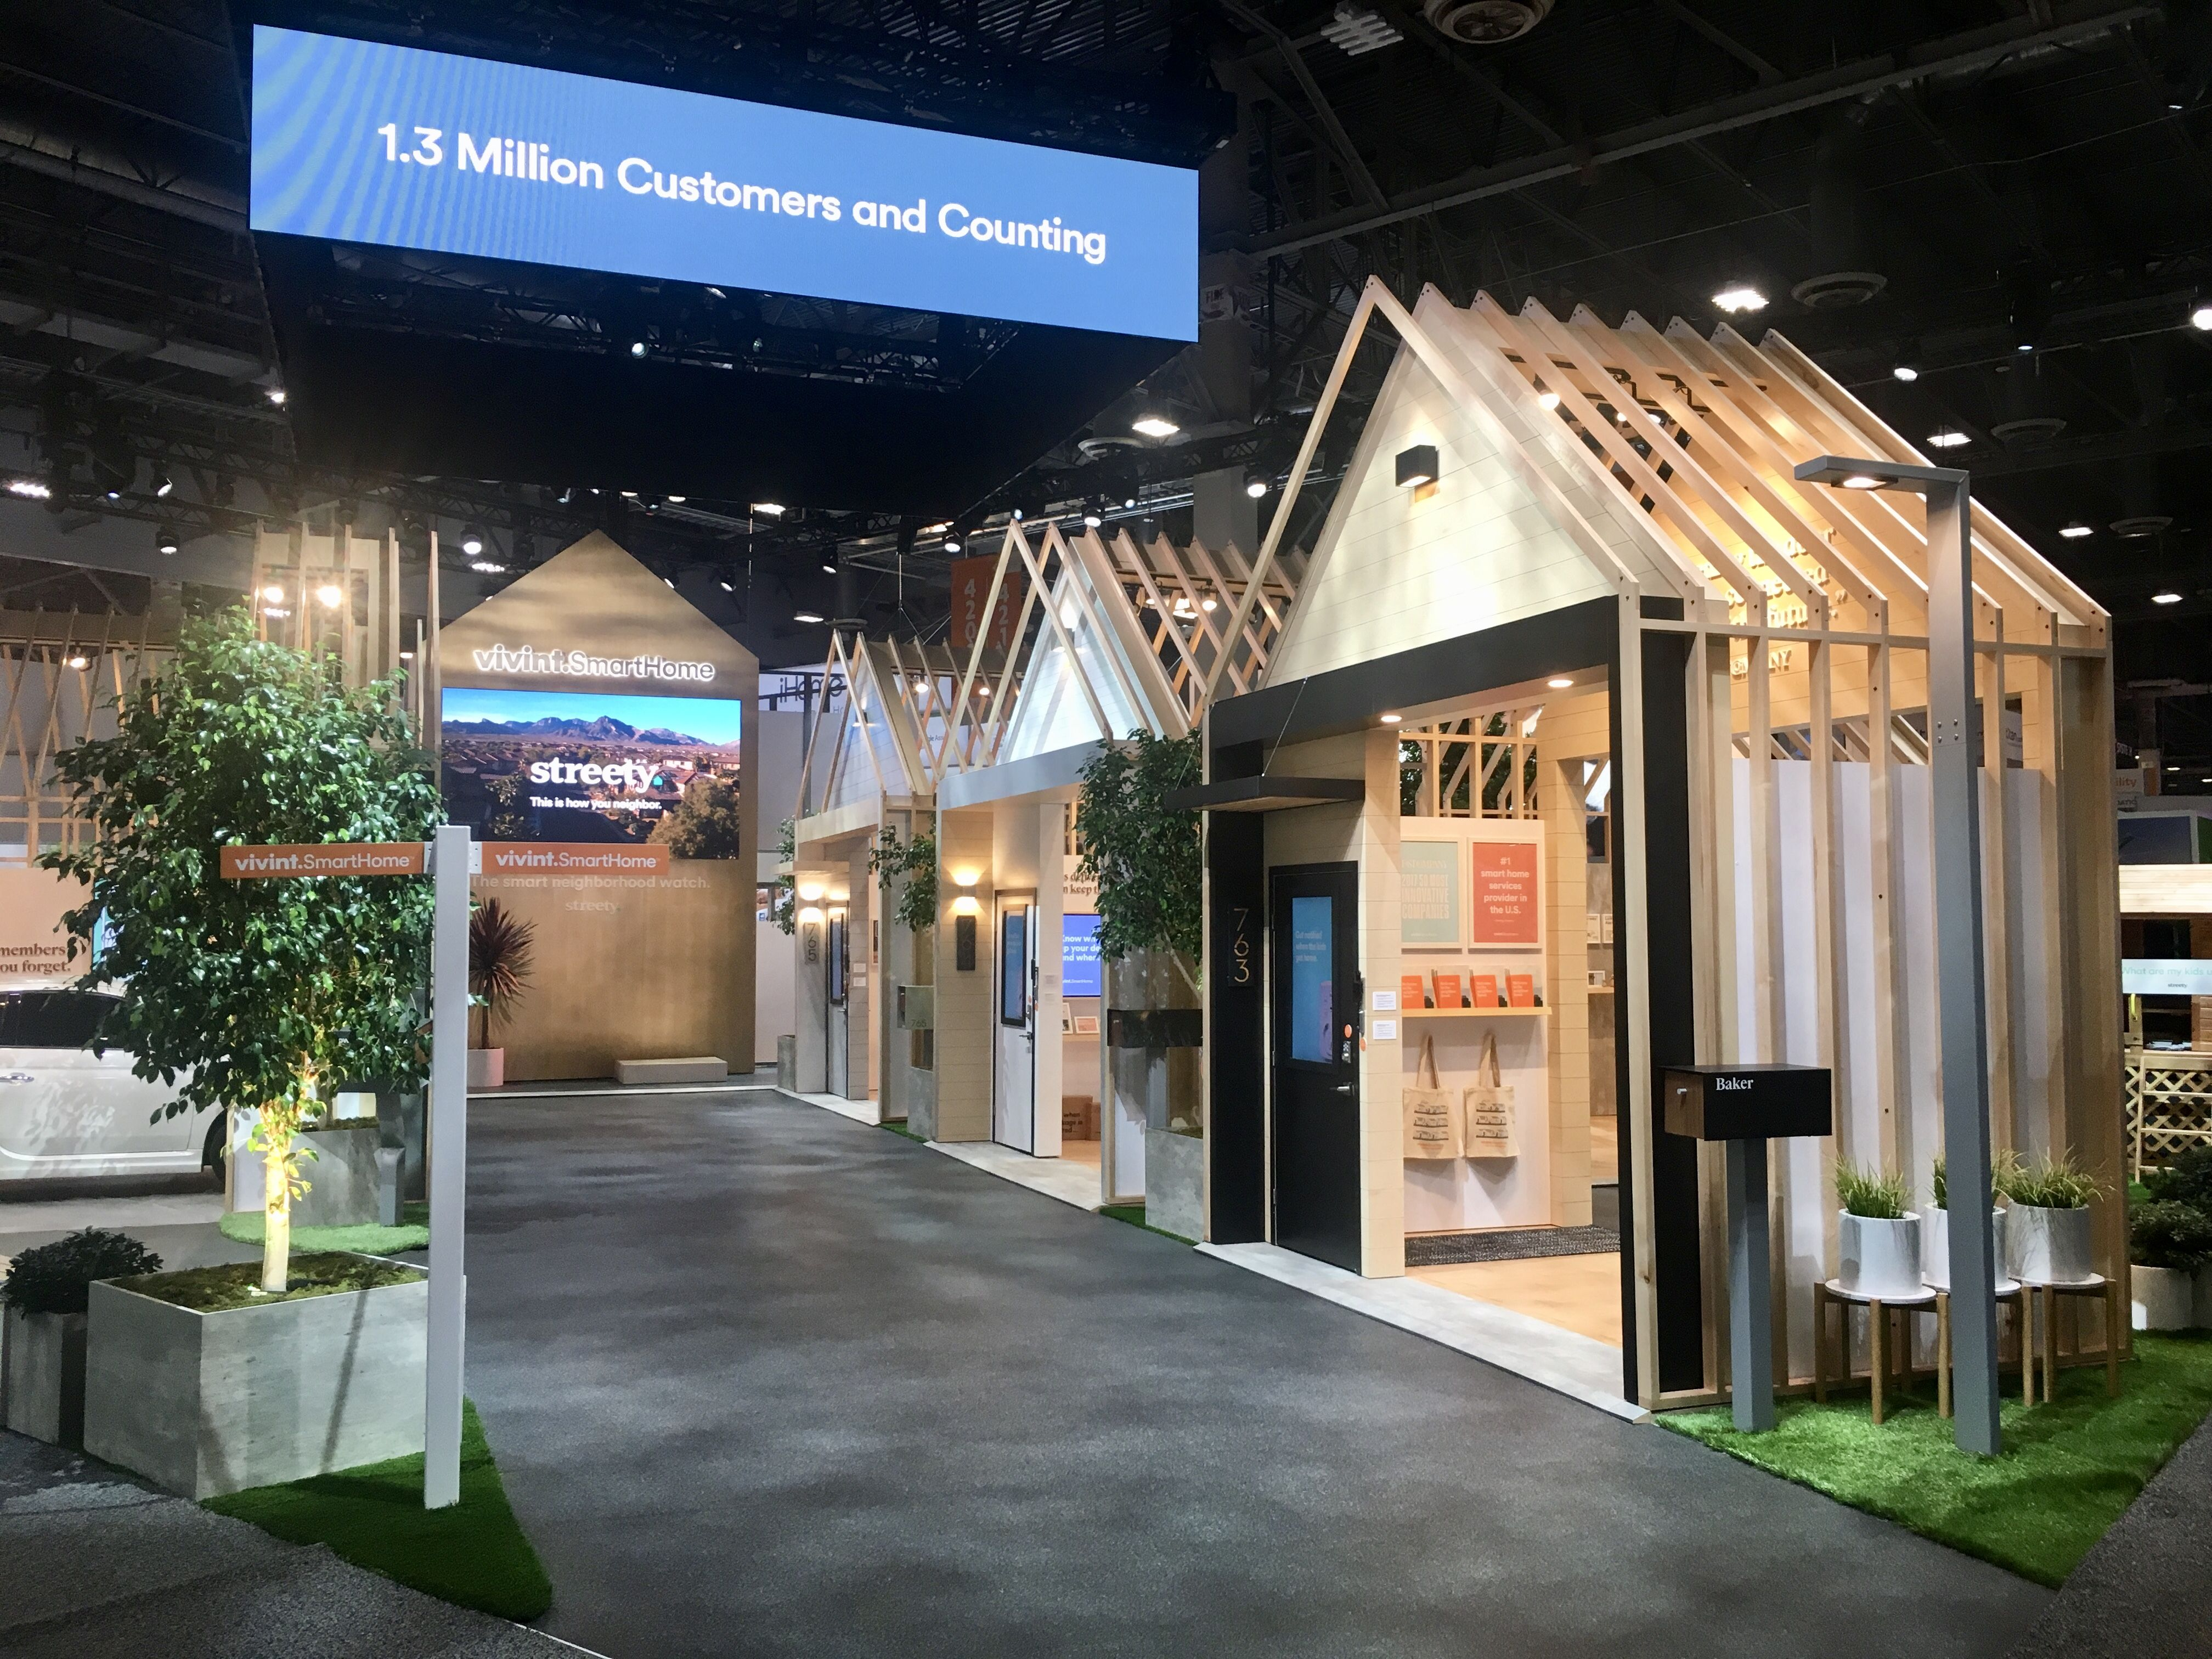 50x80 VIVINT Booth At CES 2108 By Mackenzie EXHIBIT